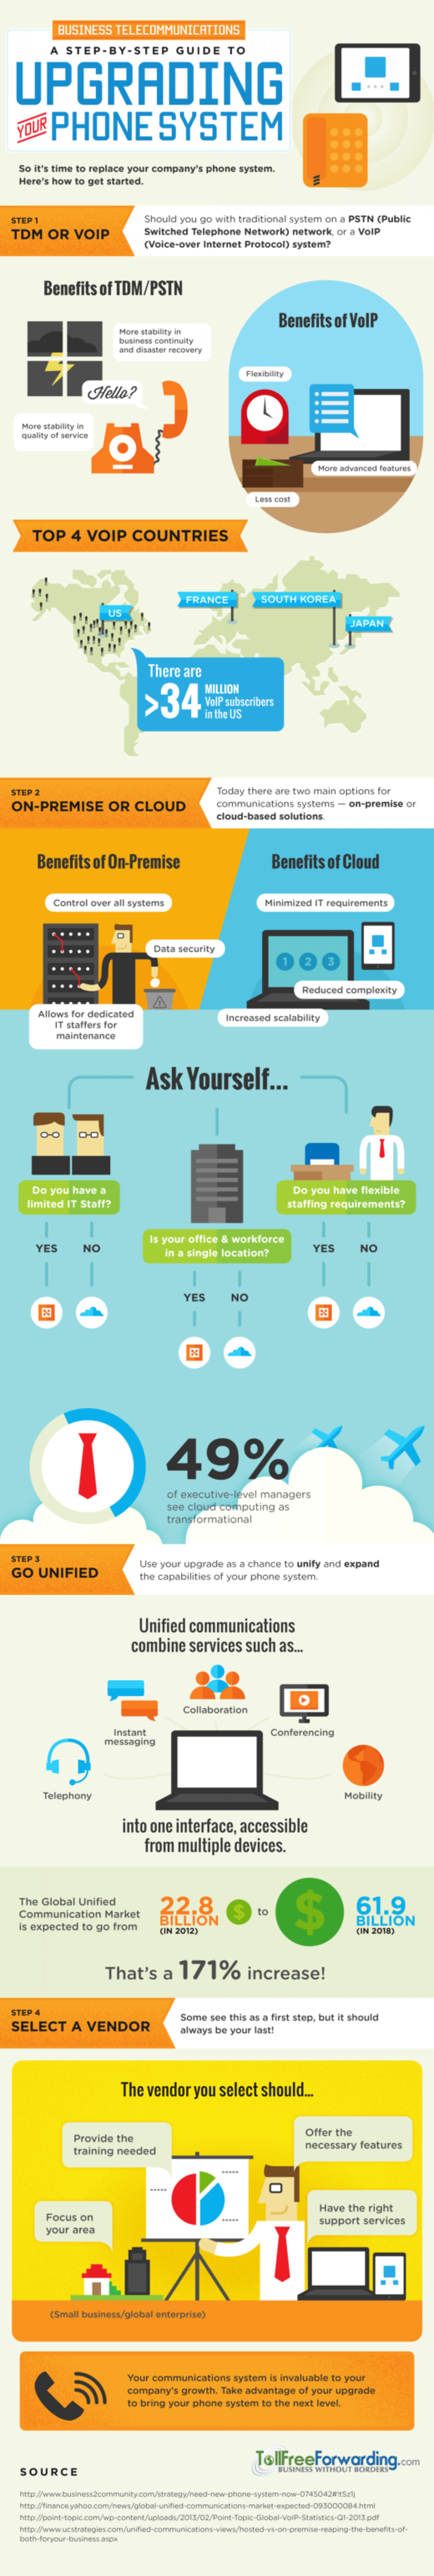 Business Telecommunications: A Step-by-Step Guide To Upgrading Your Phone System Infographic